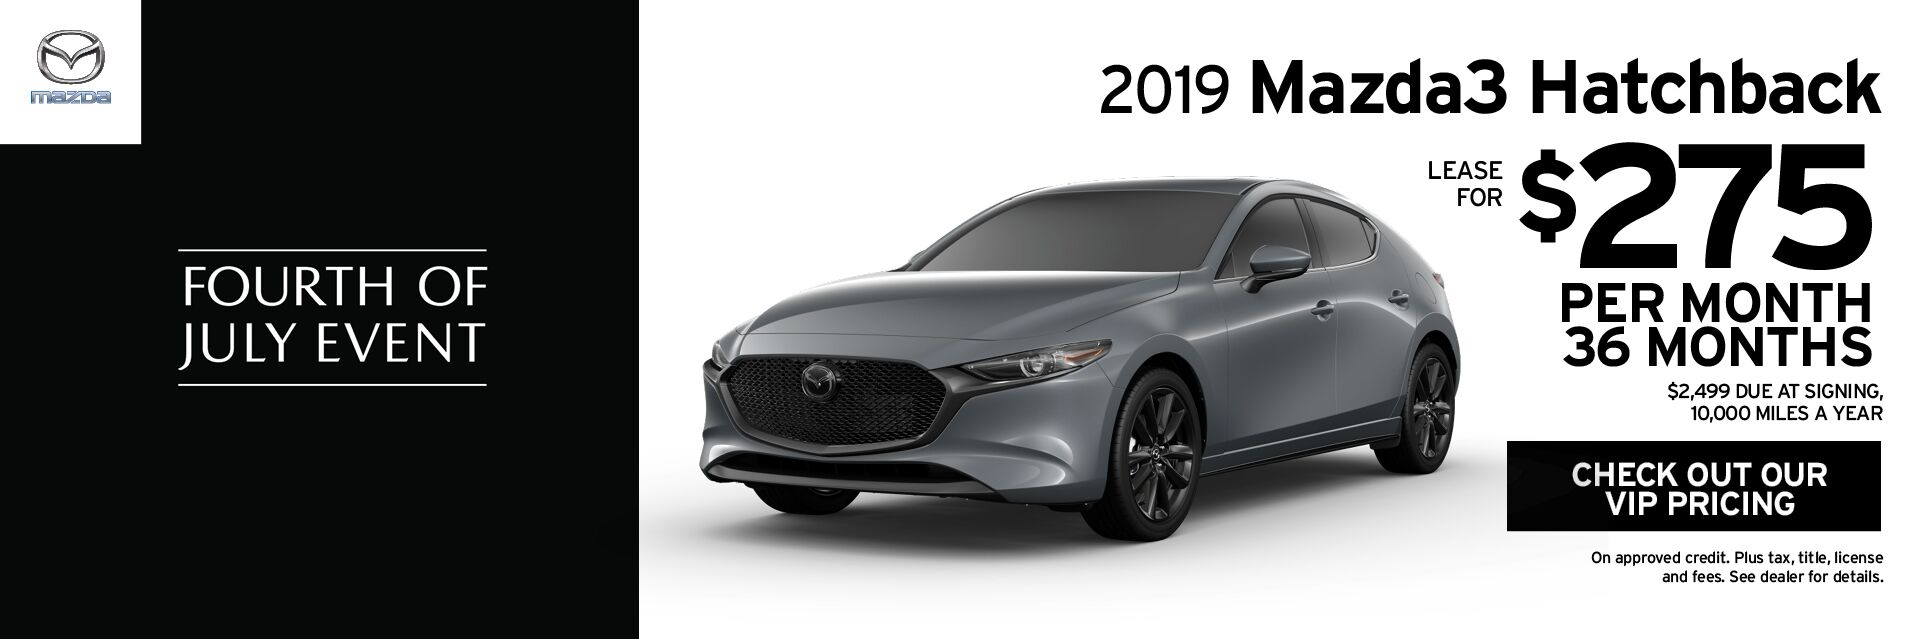 Mazda3 Hatchback - JUN 2019